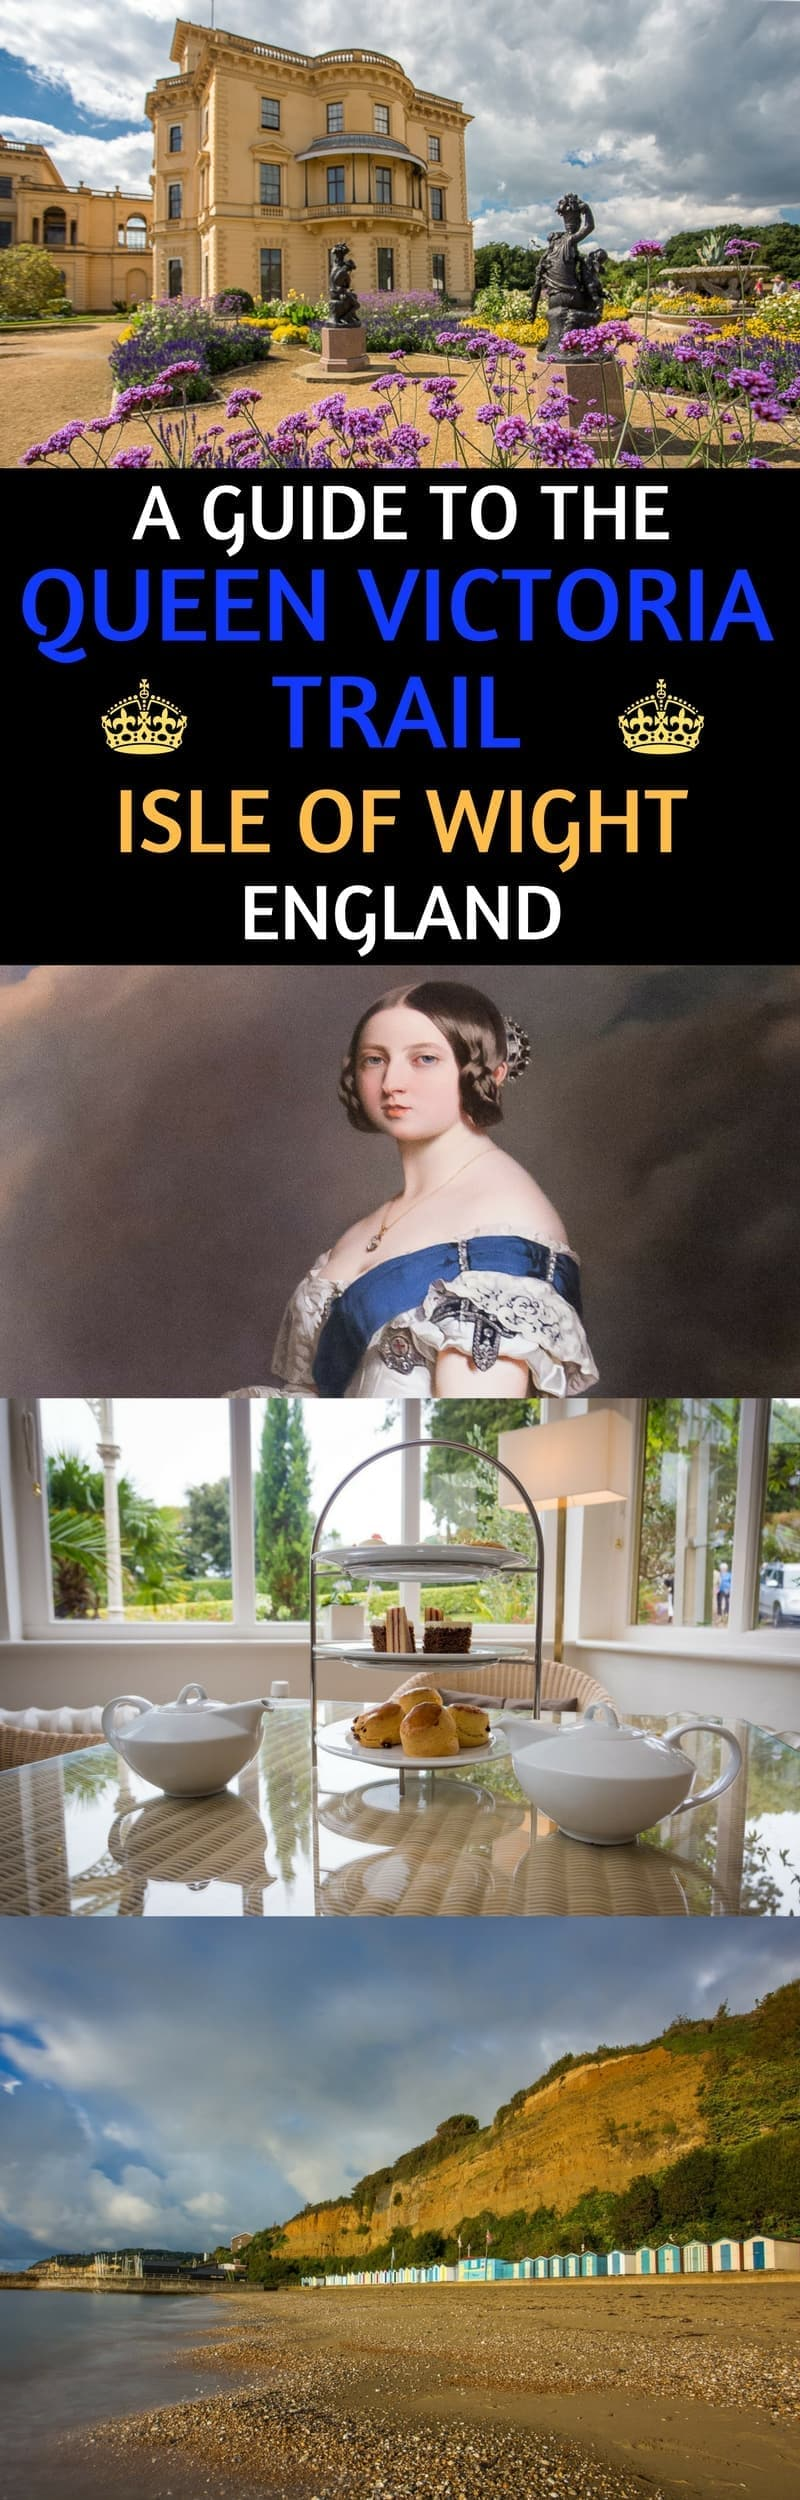 A guide to visiting the Isle of Wight in England and exploring sites related to Queen Victoria and the royal family. Guide covers over 20 sites and attractions from her former royal place, a medieval castle, scenic view points, and spots to have afternoon tea. #IsleofWight #England #QueenVictoria #IOW #IsleofWighttravel